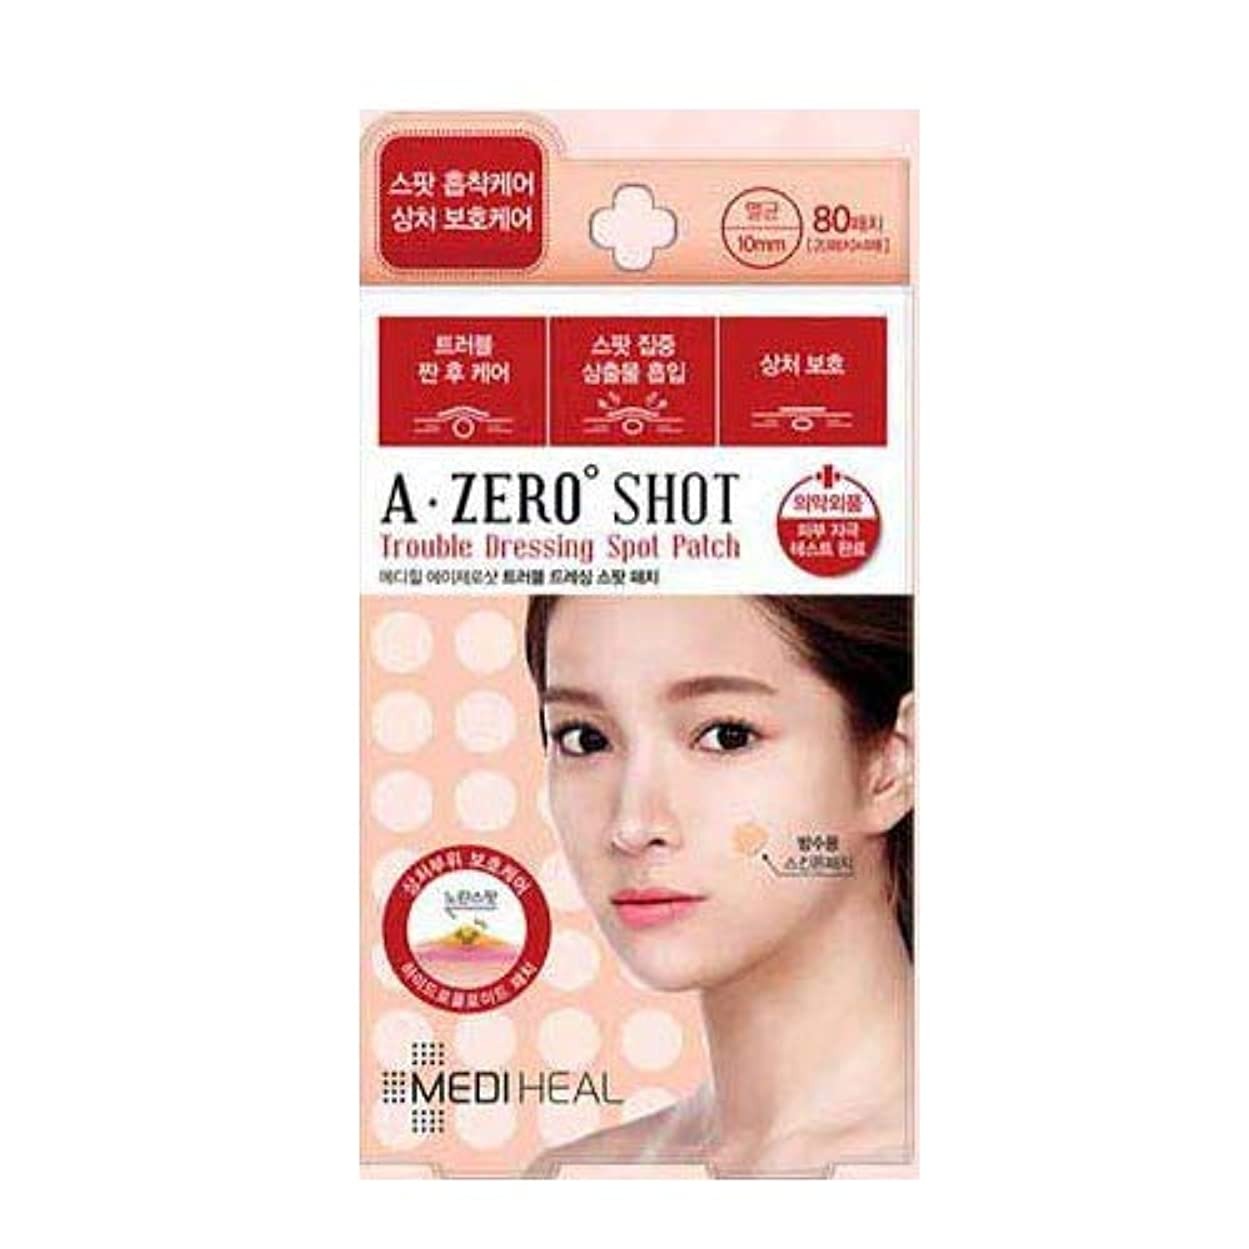 アークアソシエイトつかいますMEDIHEAL A-zero Shot Trouble Dressing Spot Patch Clear Spot Patch トラブル軽減